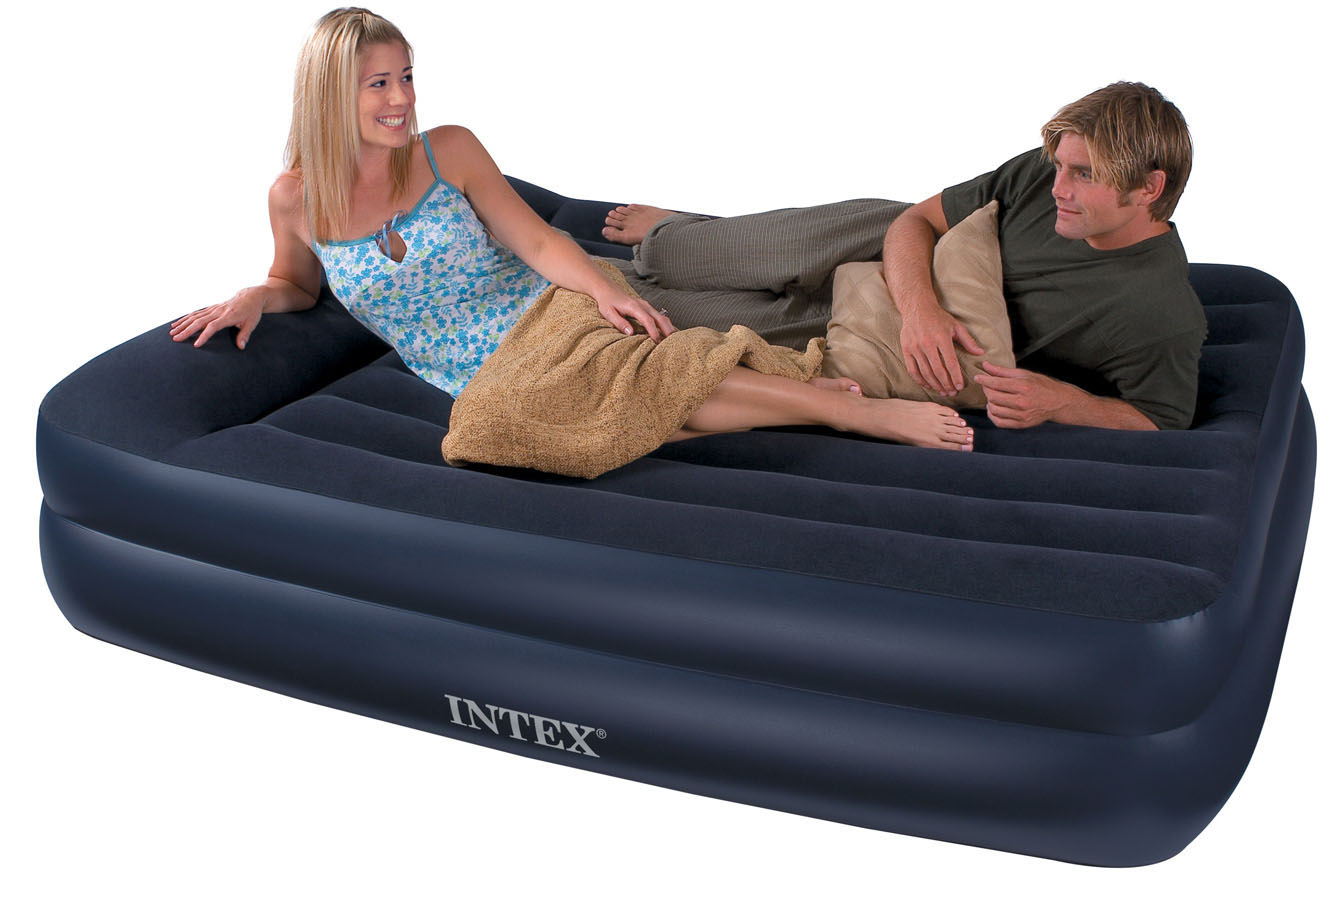 intex queen size pillow rest airbed with built-in electric pump